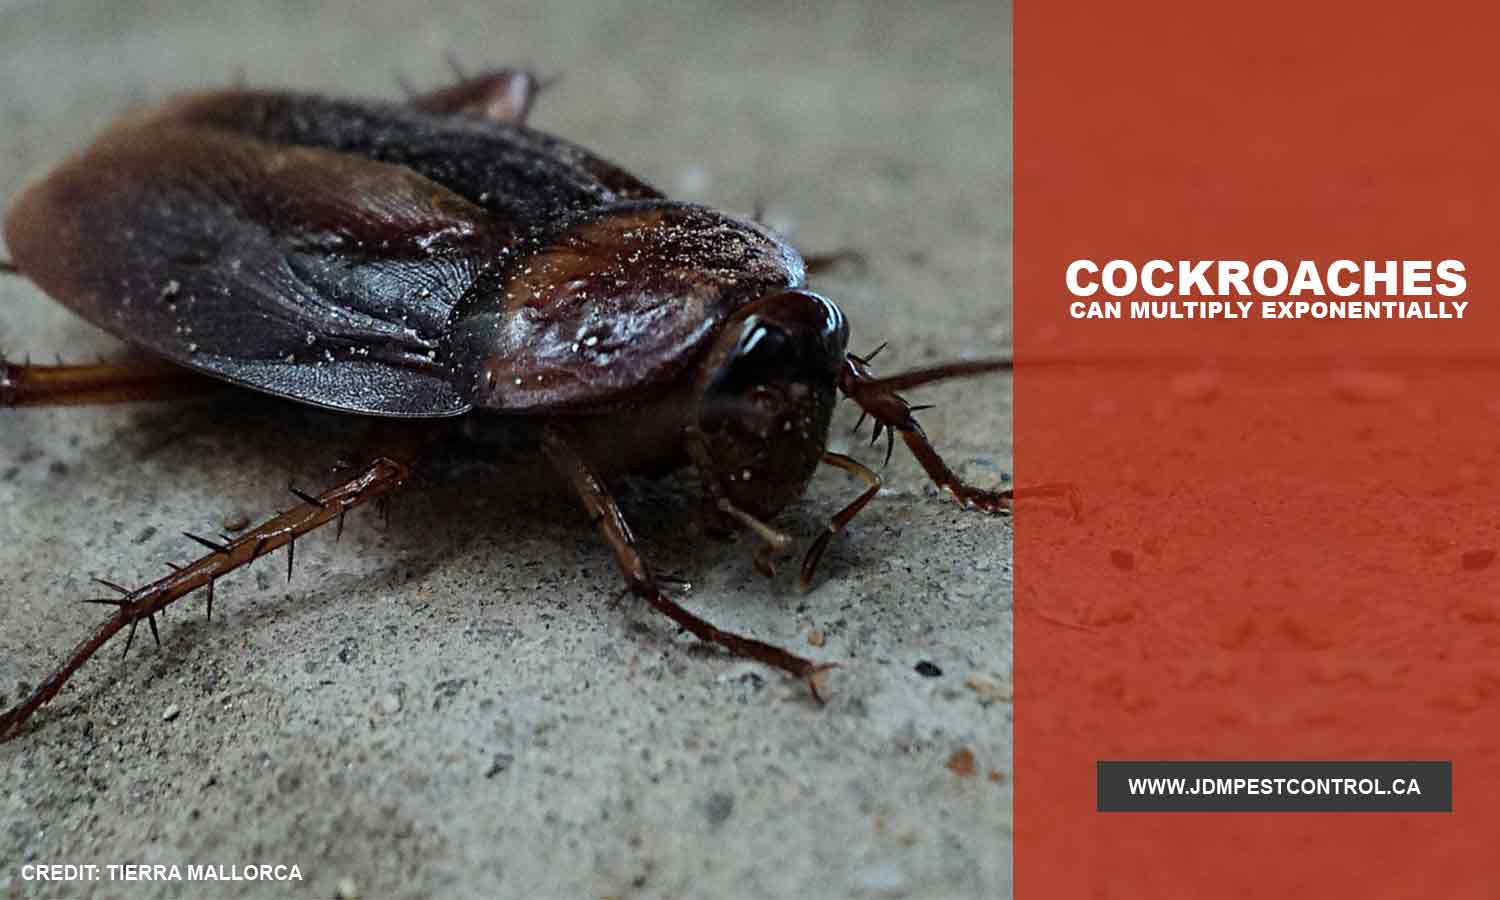 Cockroaches can multiply exponentially